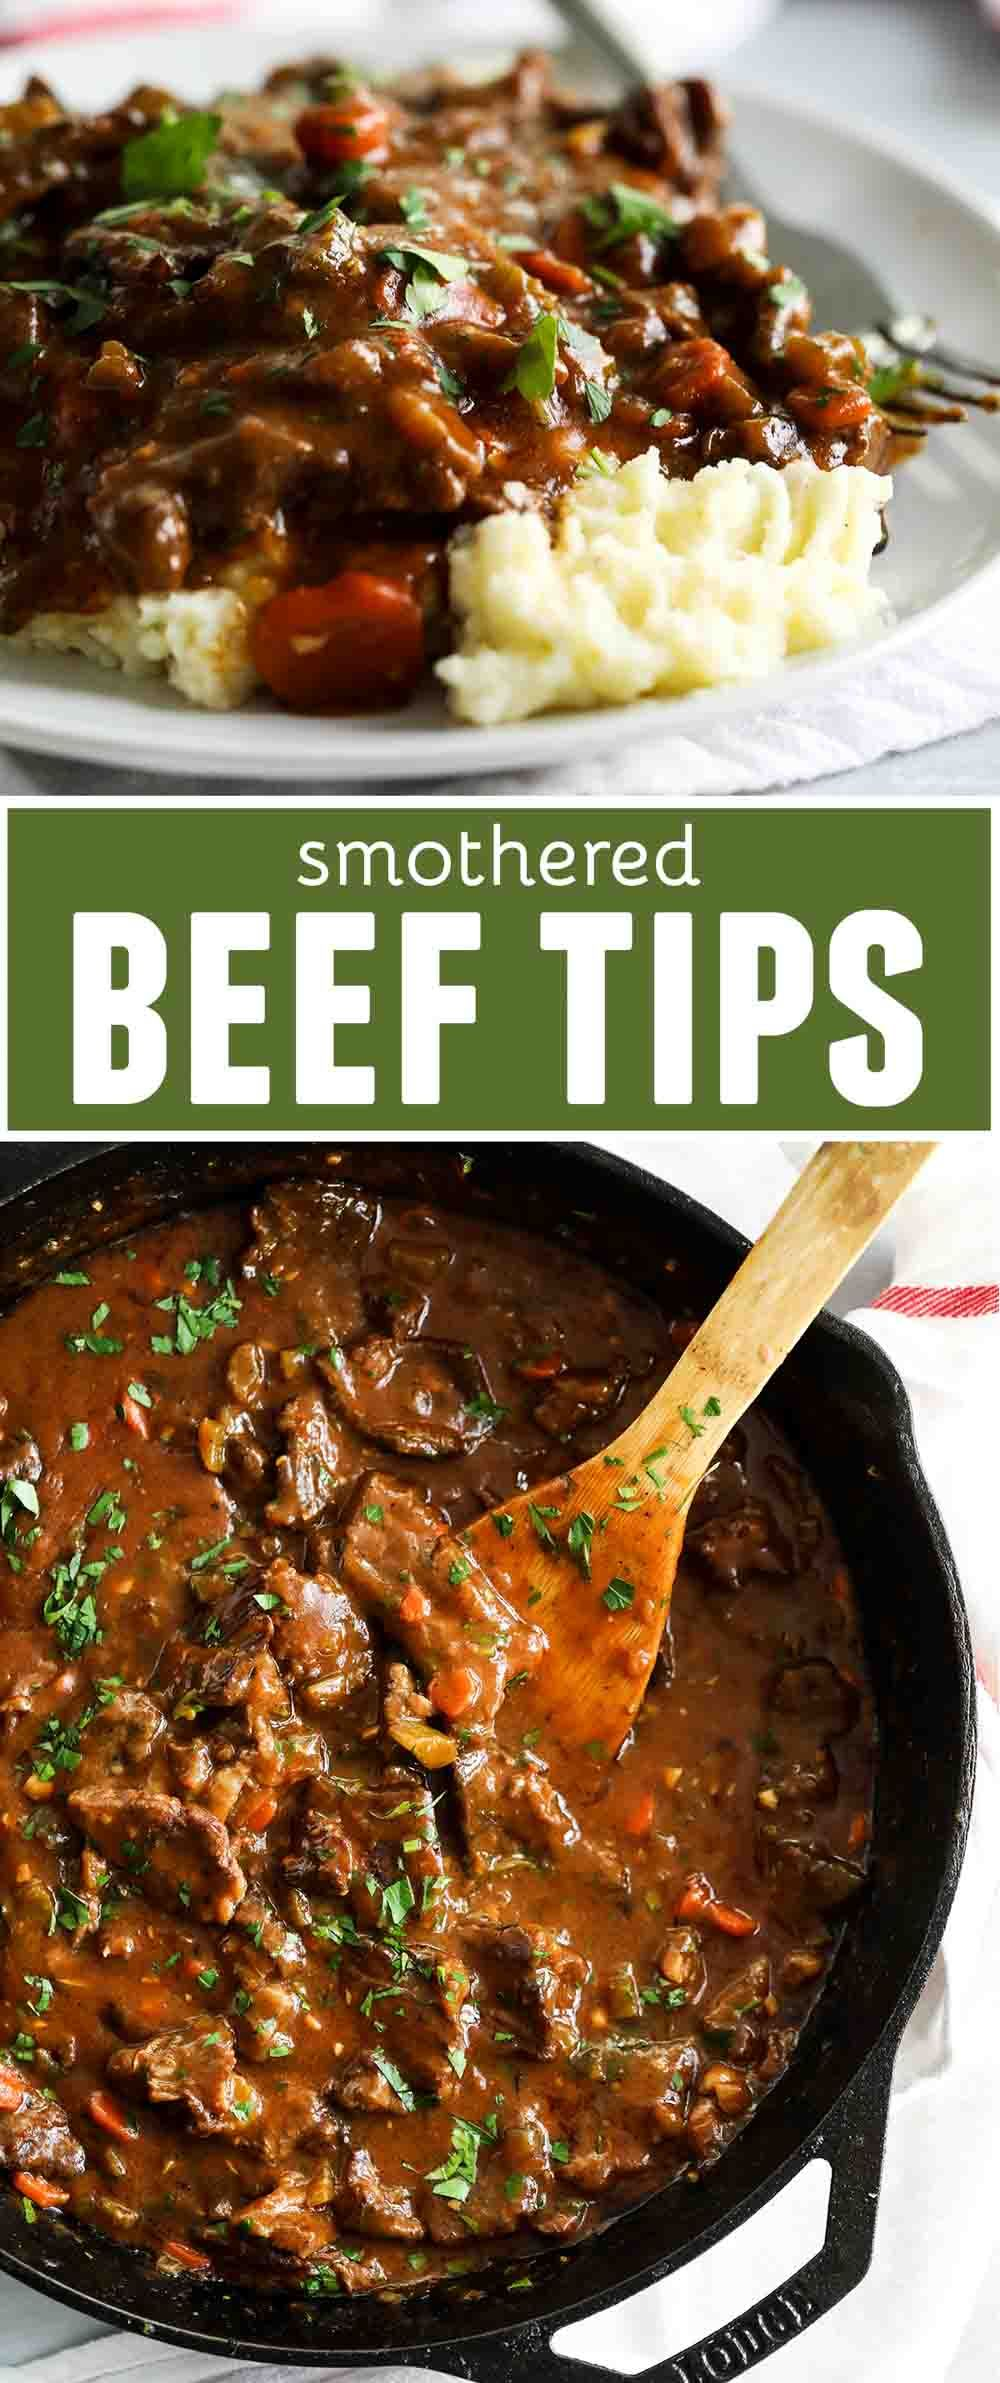 Smothered Beef Tips images